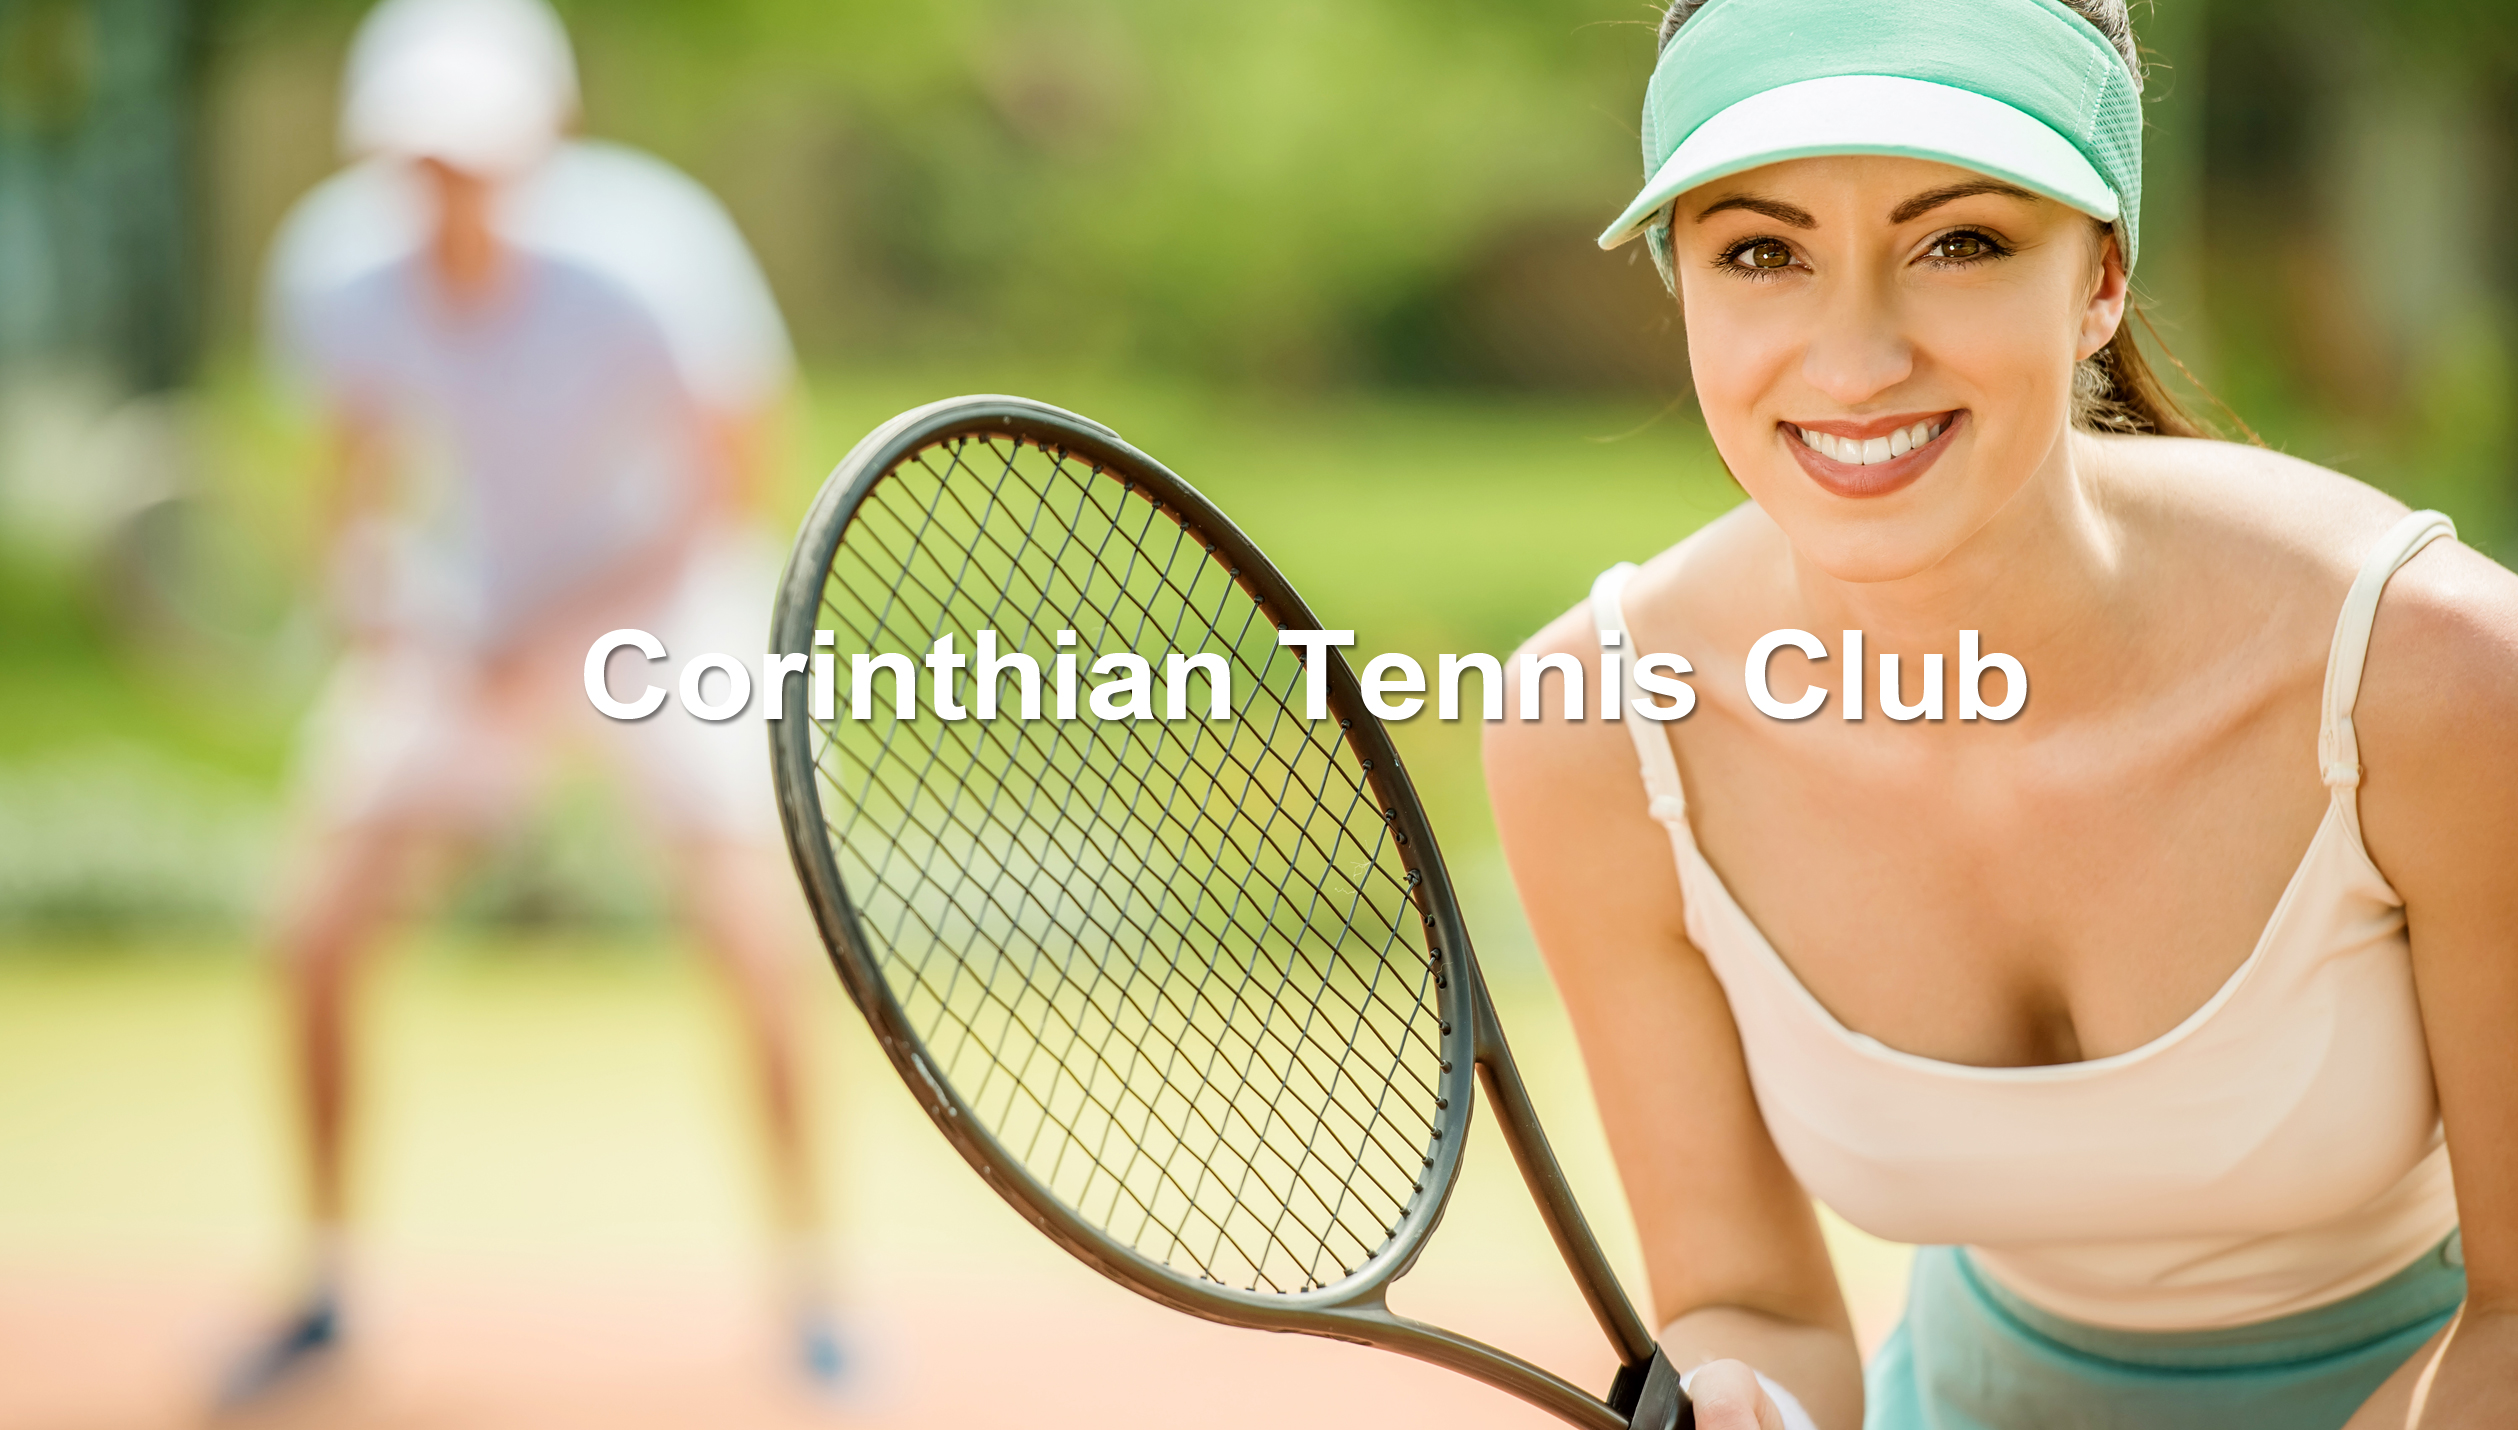 shelley-apartments-corinthian-tennis-club